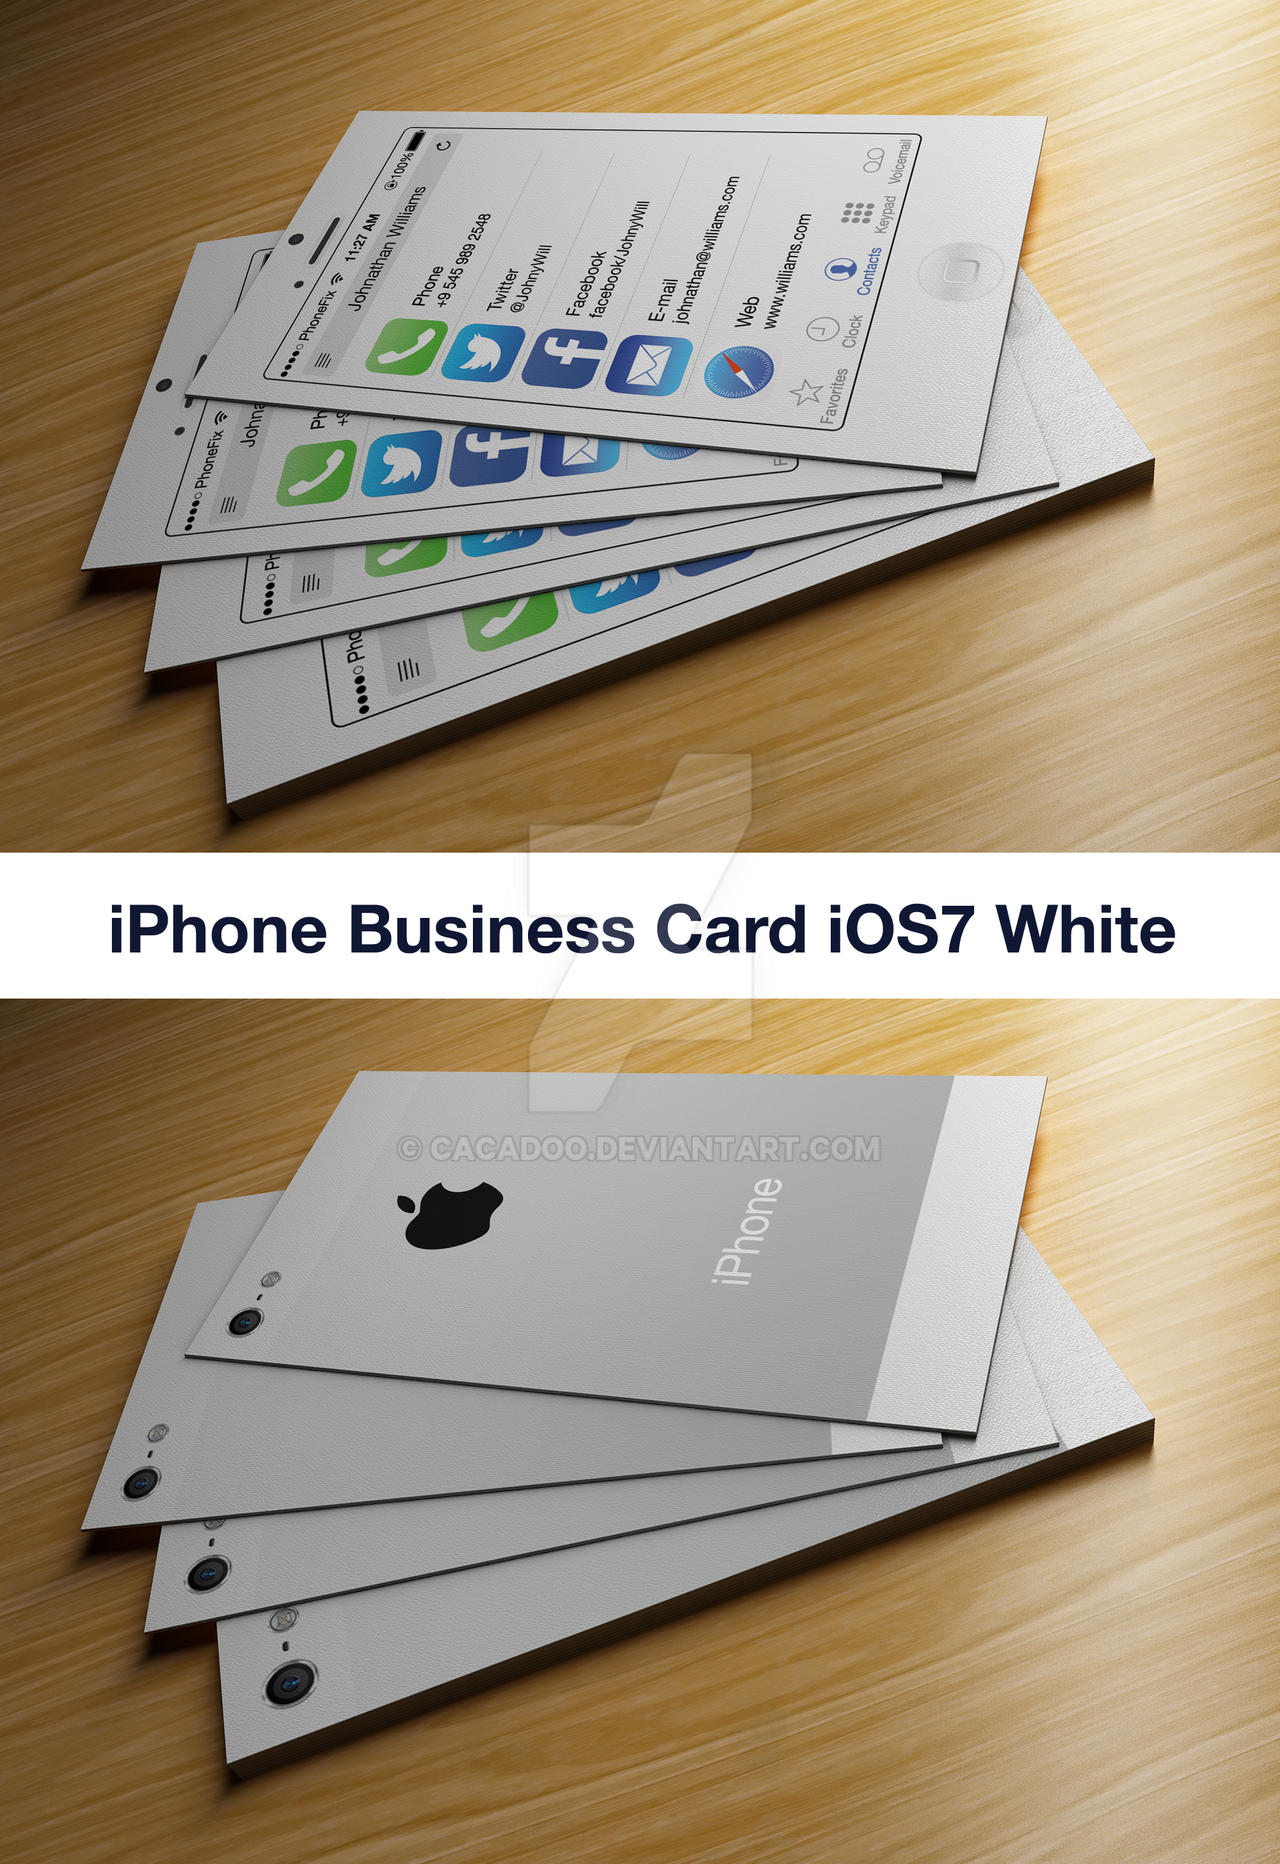 IPhone Business Card iOS7 White by CaCaDoo on DeviantArt